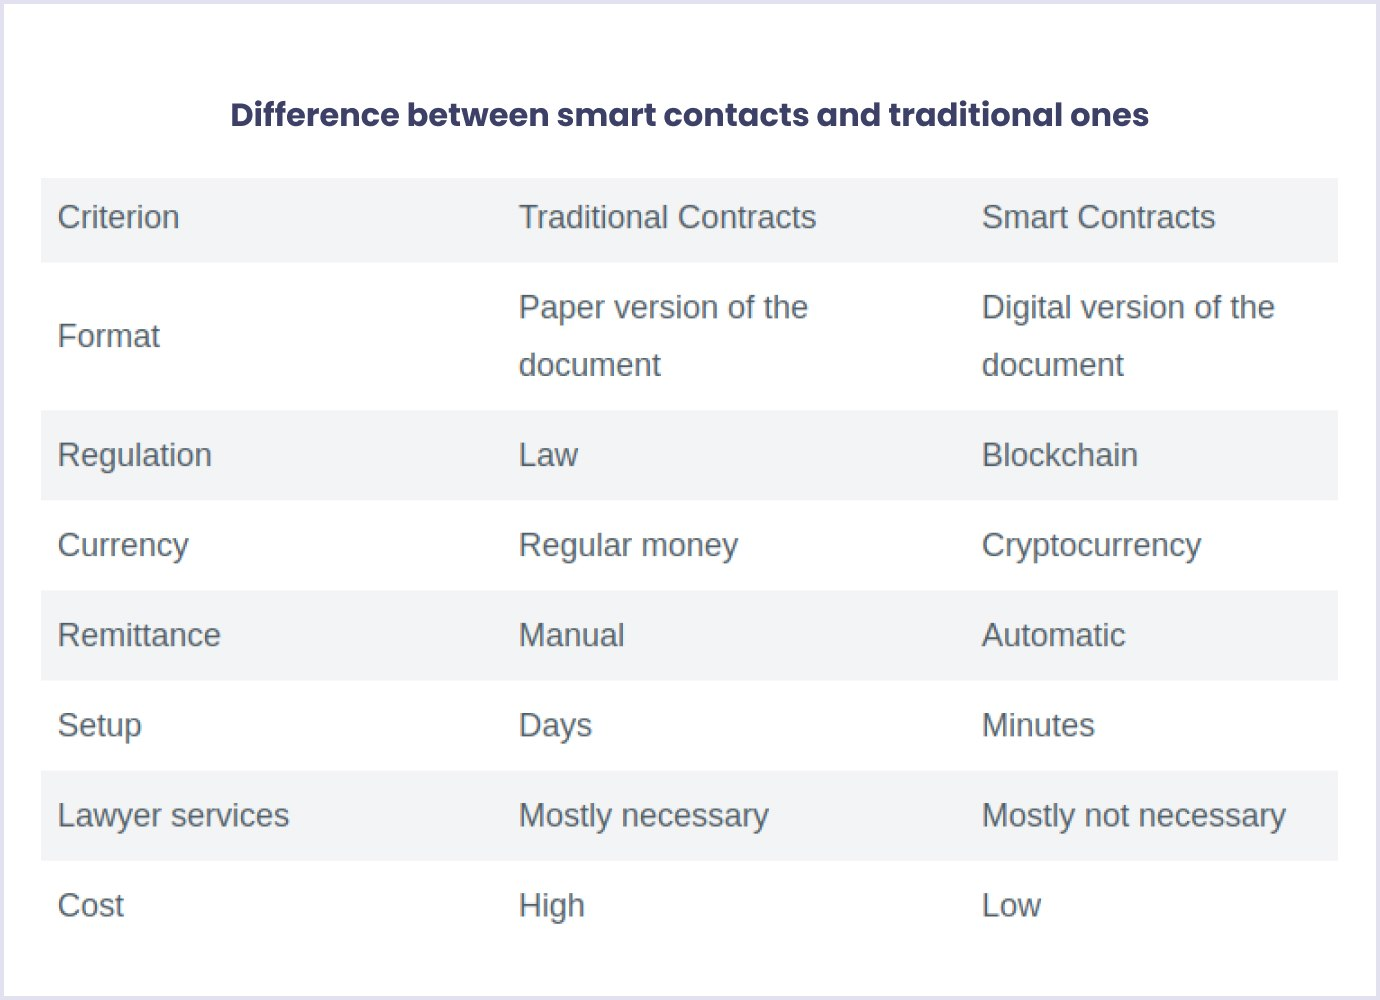 Difference between smart contacts and traditional ones